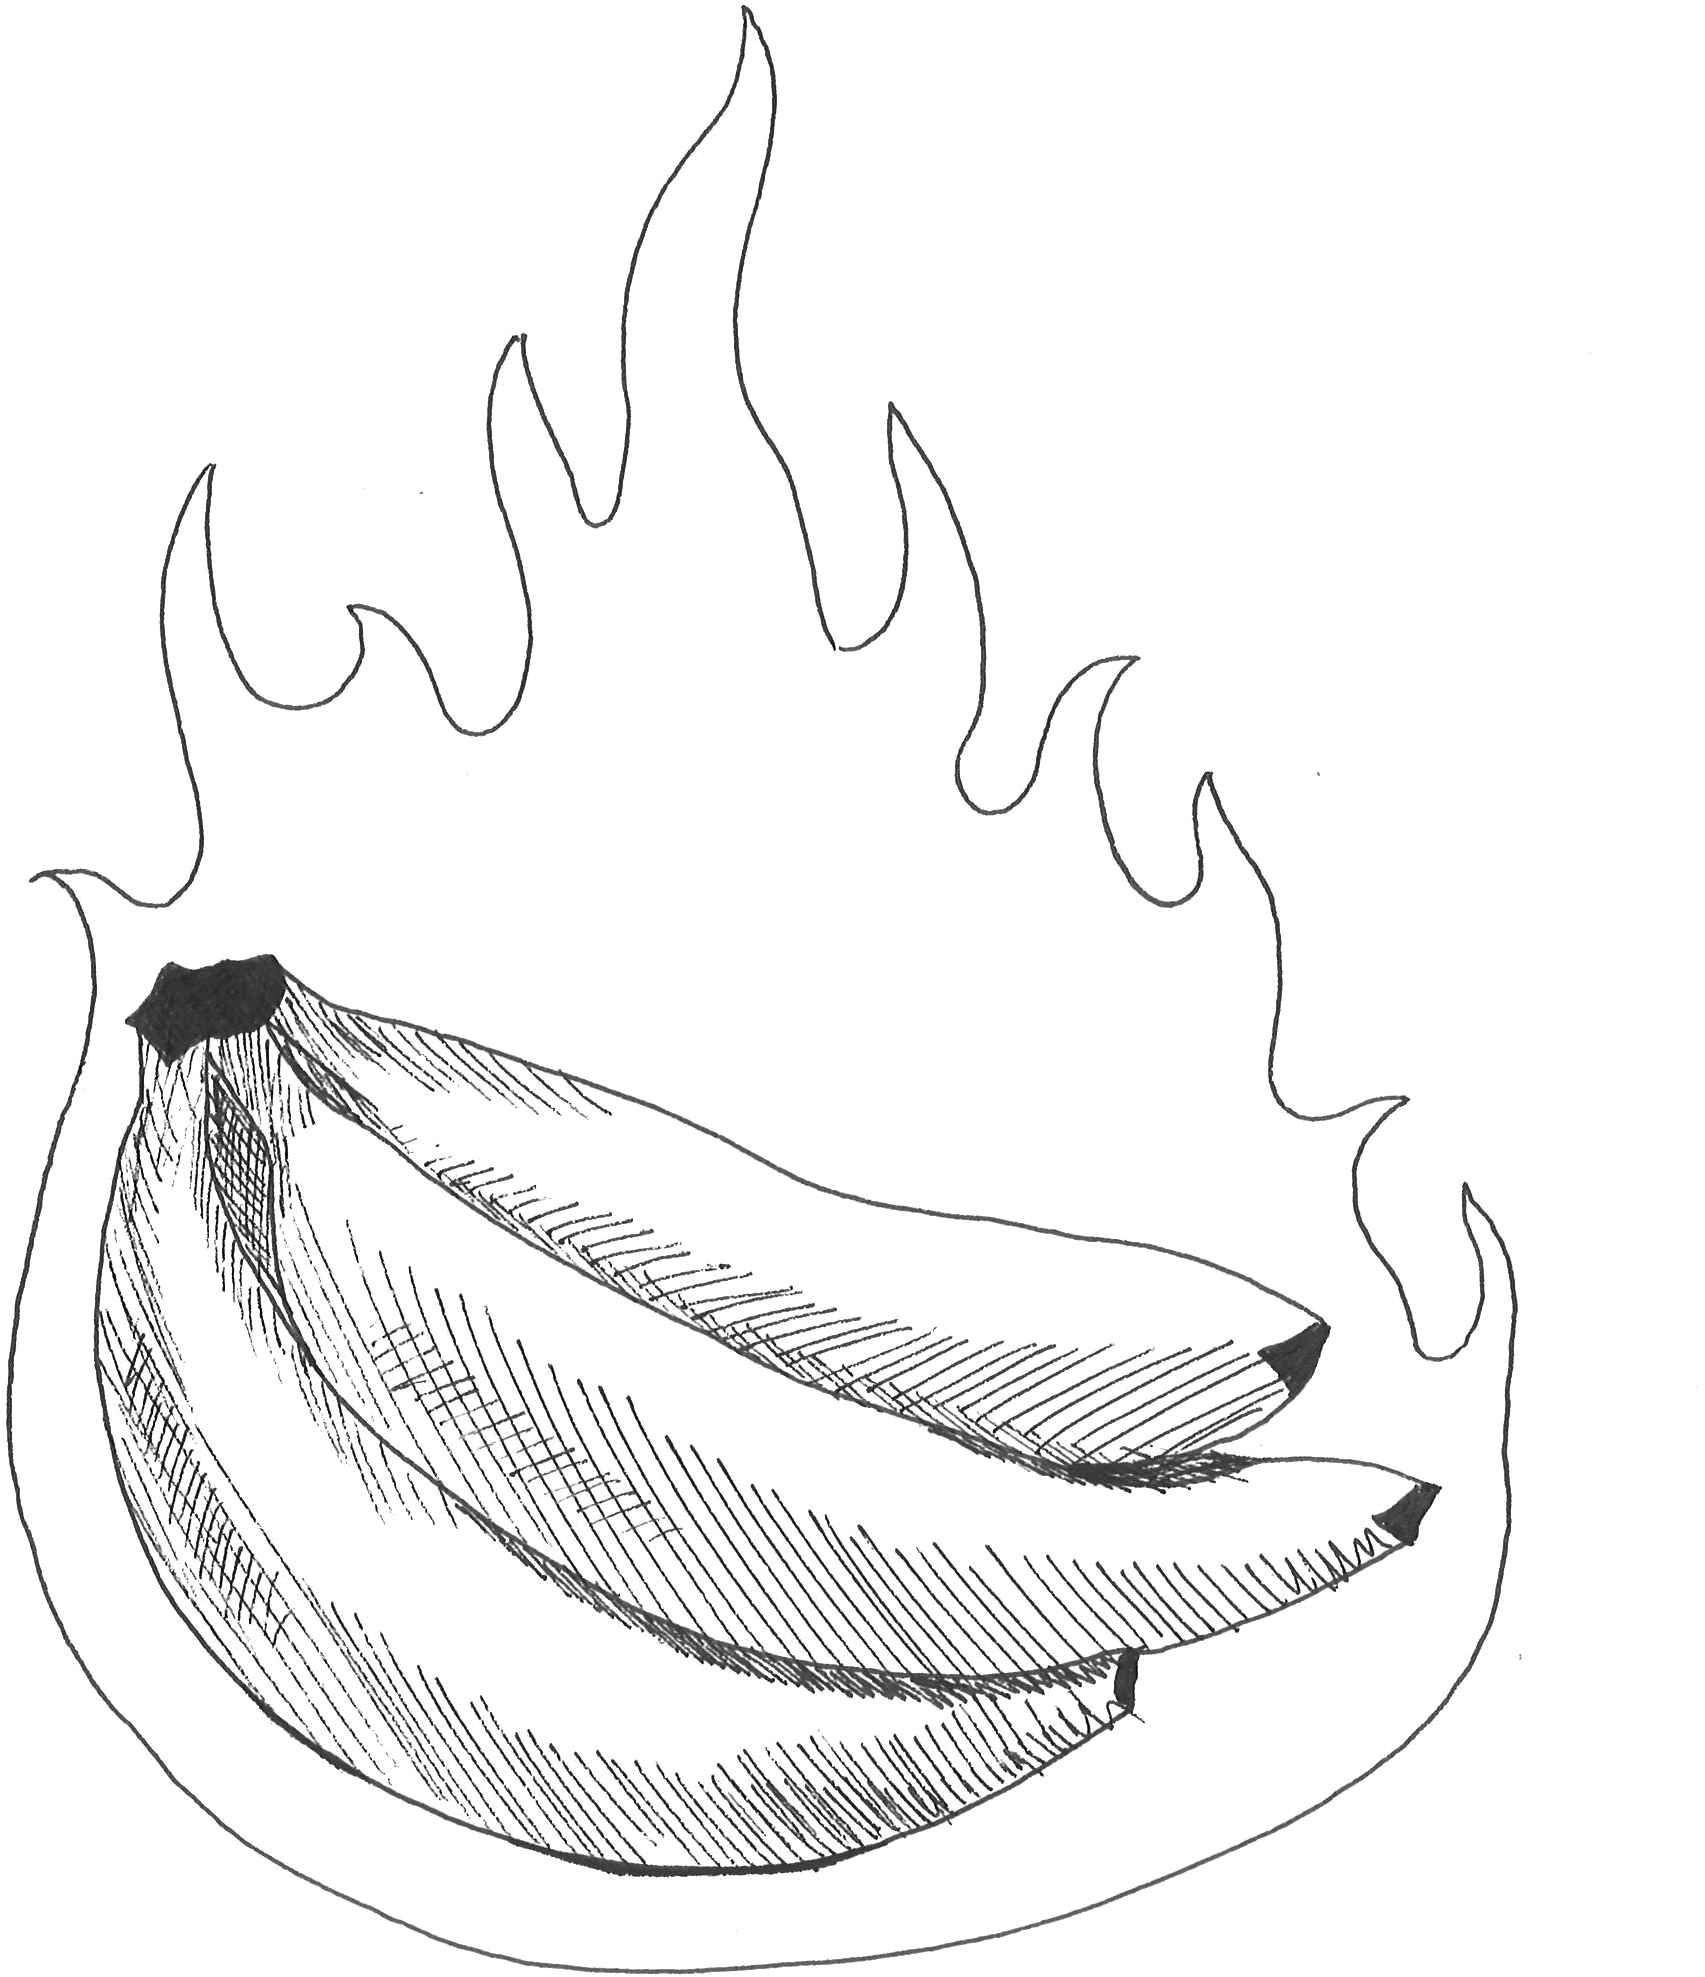 Download Bananas On Fire Sketch Png Image With No Background Pngkey Com